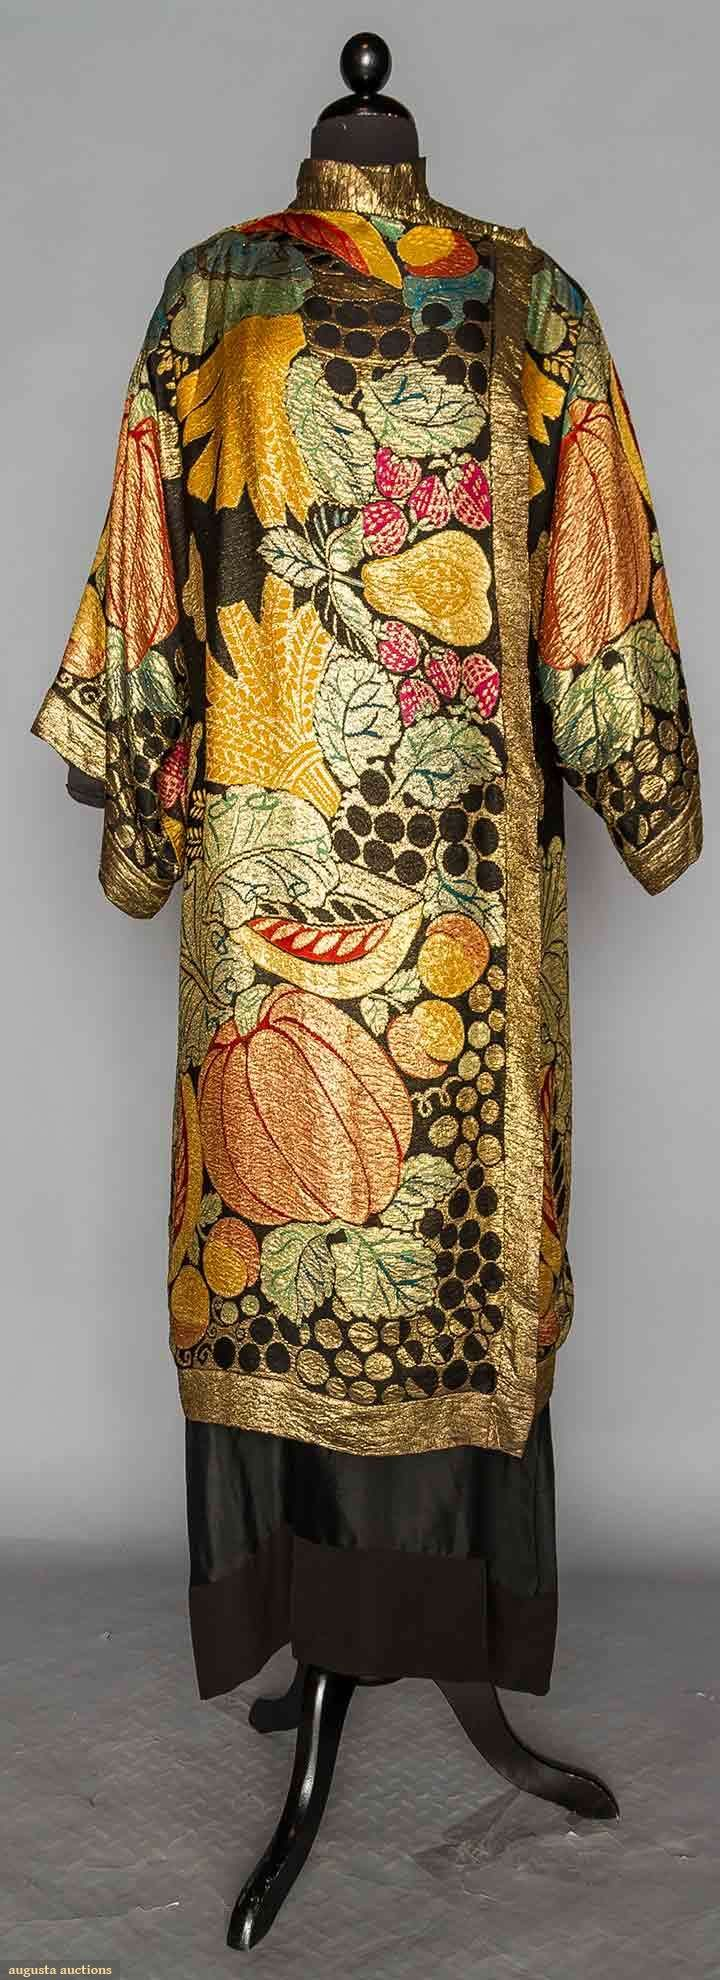 Evening Coat (image 1) | 1920s |  silk, lame | Augusta Auctions | April 20, 2016/Lot 314